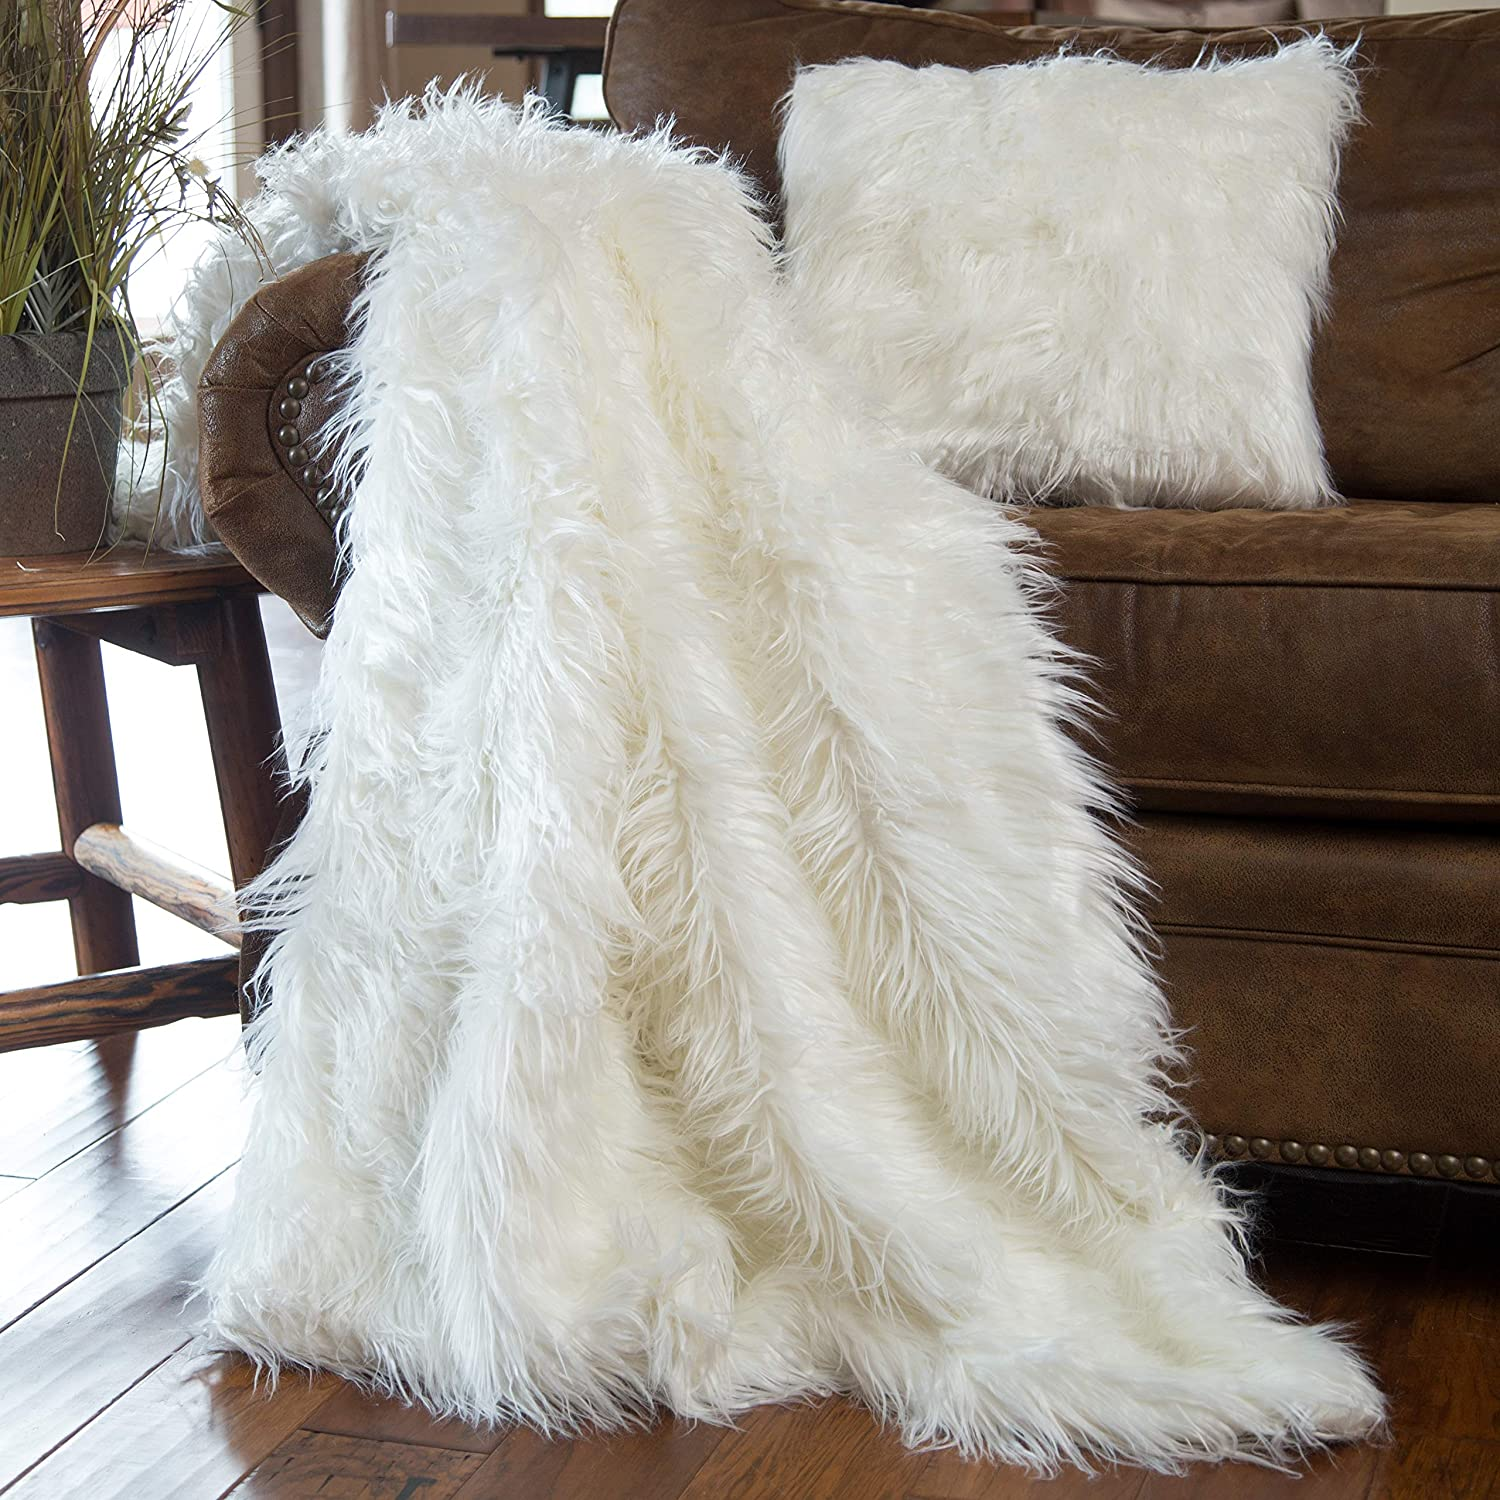 North End Decor Faux Fur Pillow & Blanket, Mongolian Long Hair White Throw Pillows, Blanket and Stuffed